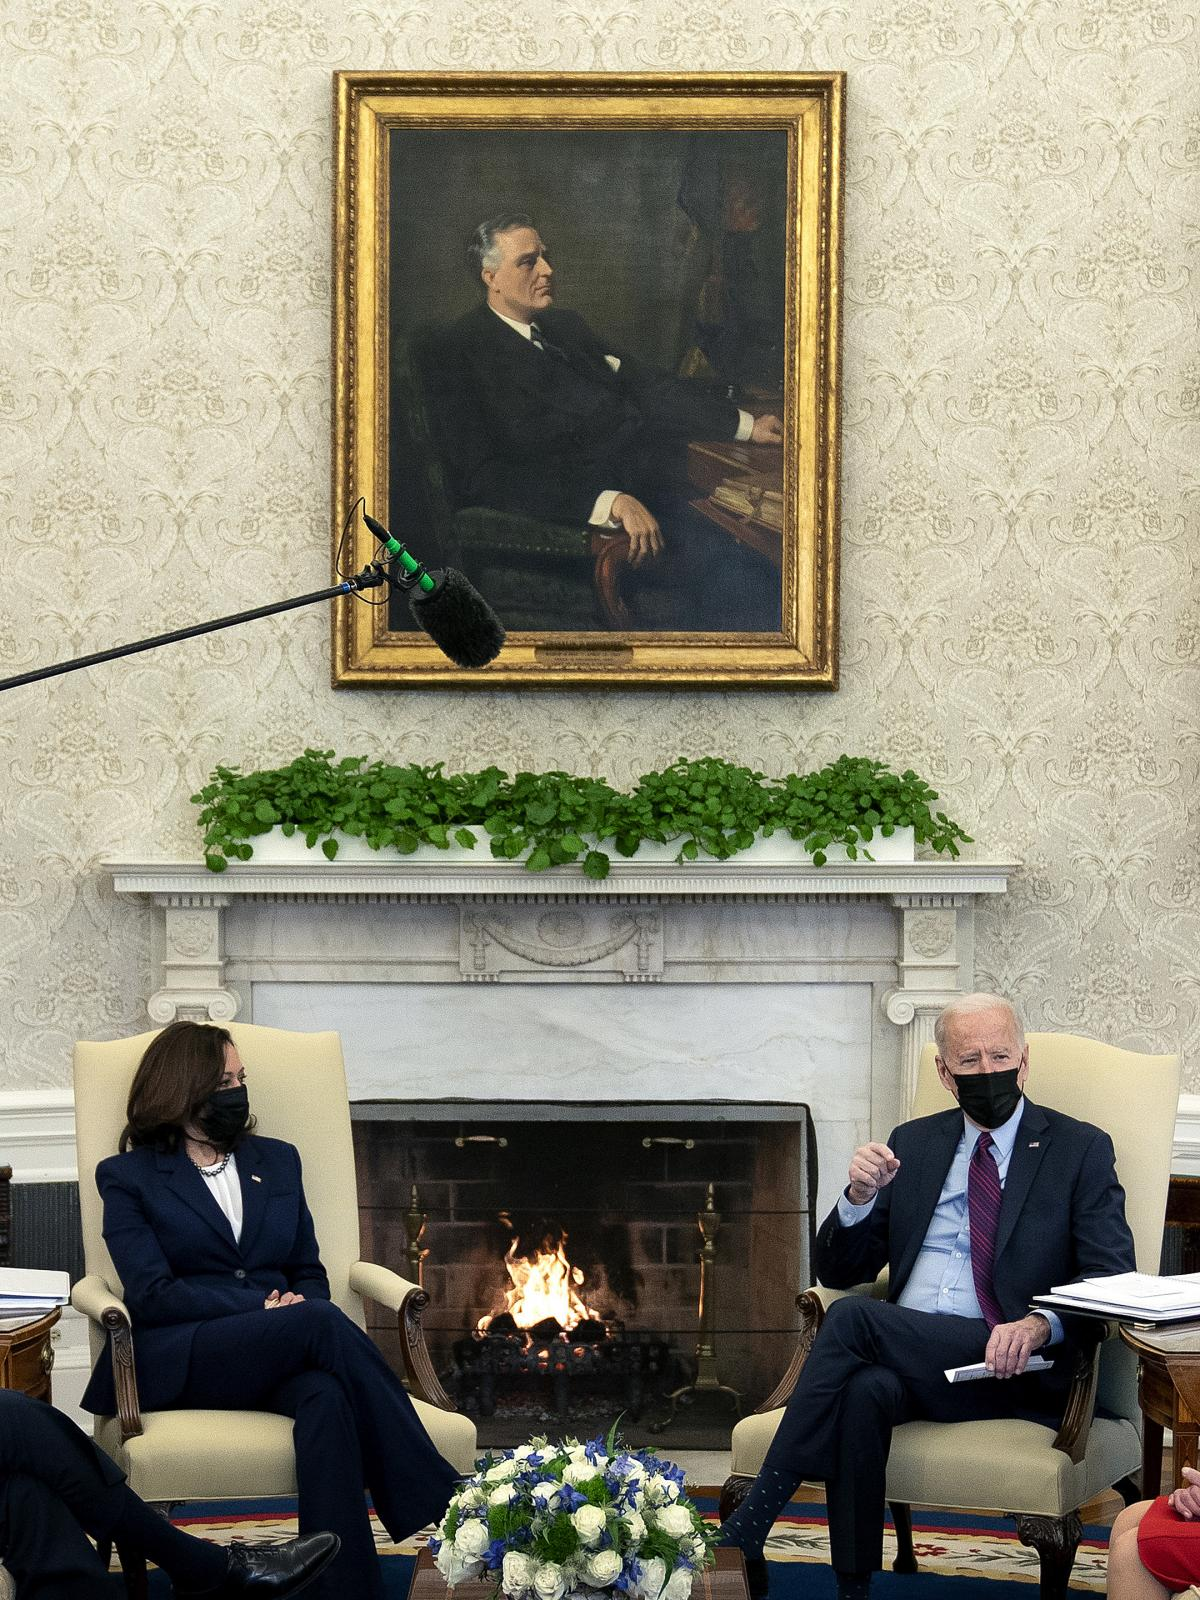 A portrait of Franklin Roosevelt is a centerpiece in President Biden's Oval Office, signaling his promise of an ambitious presidency in a national crisis.